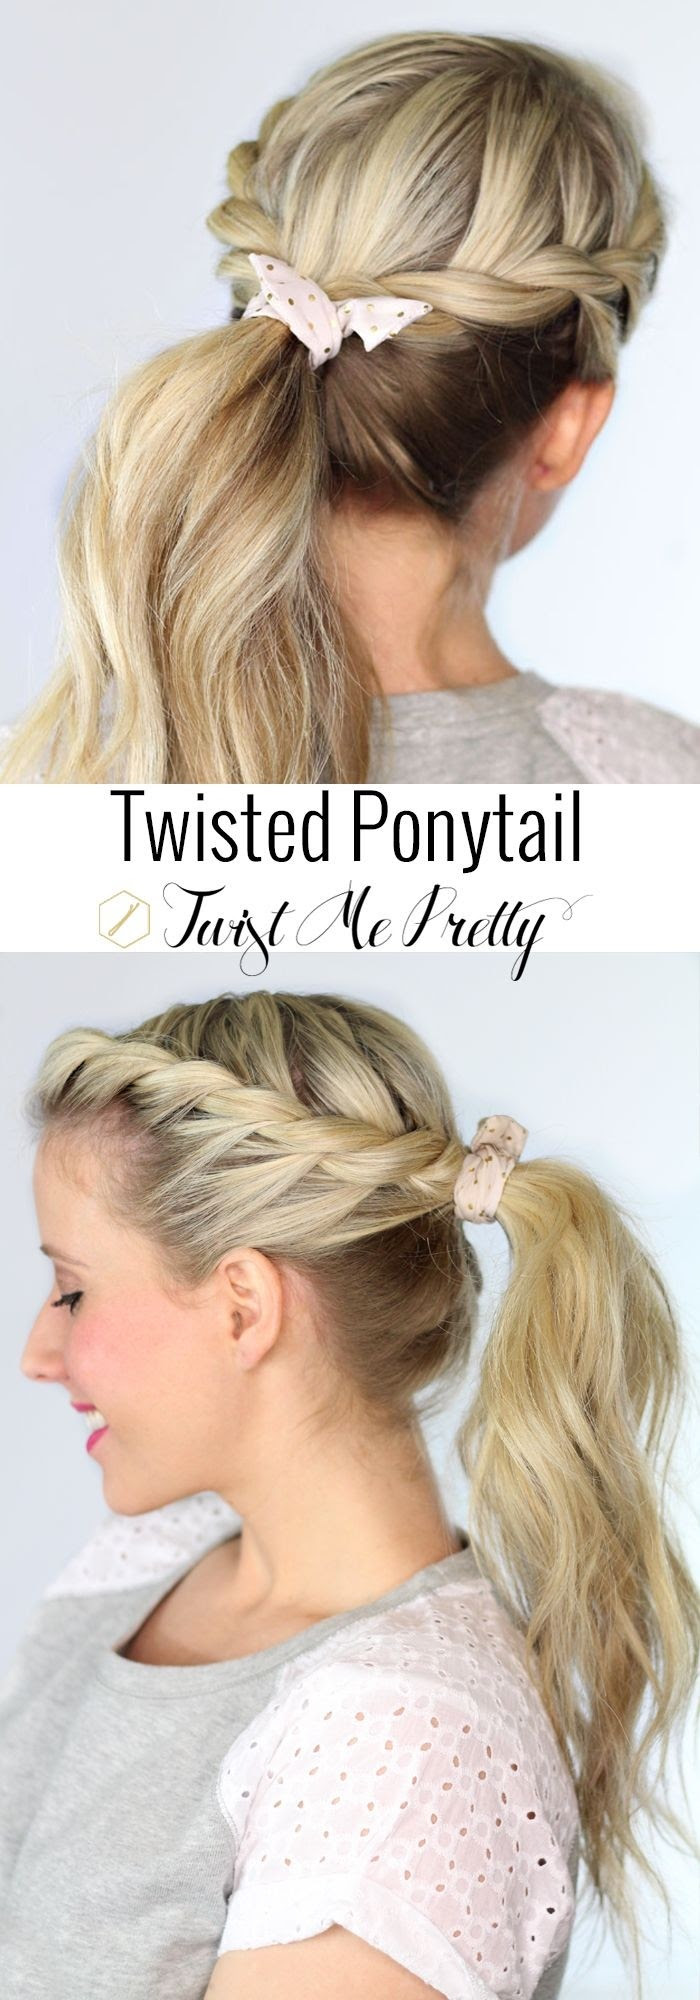 Top 10 Fashionable Ponytail  Hairstyles  for Summer Styles